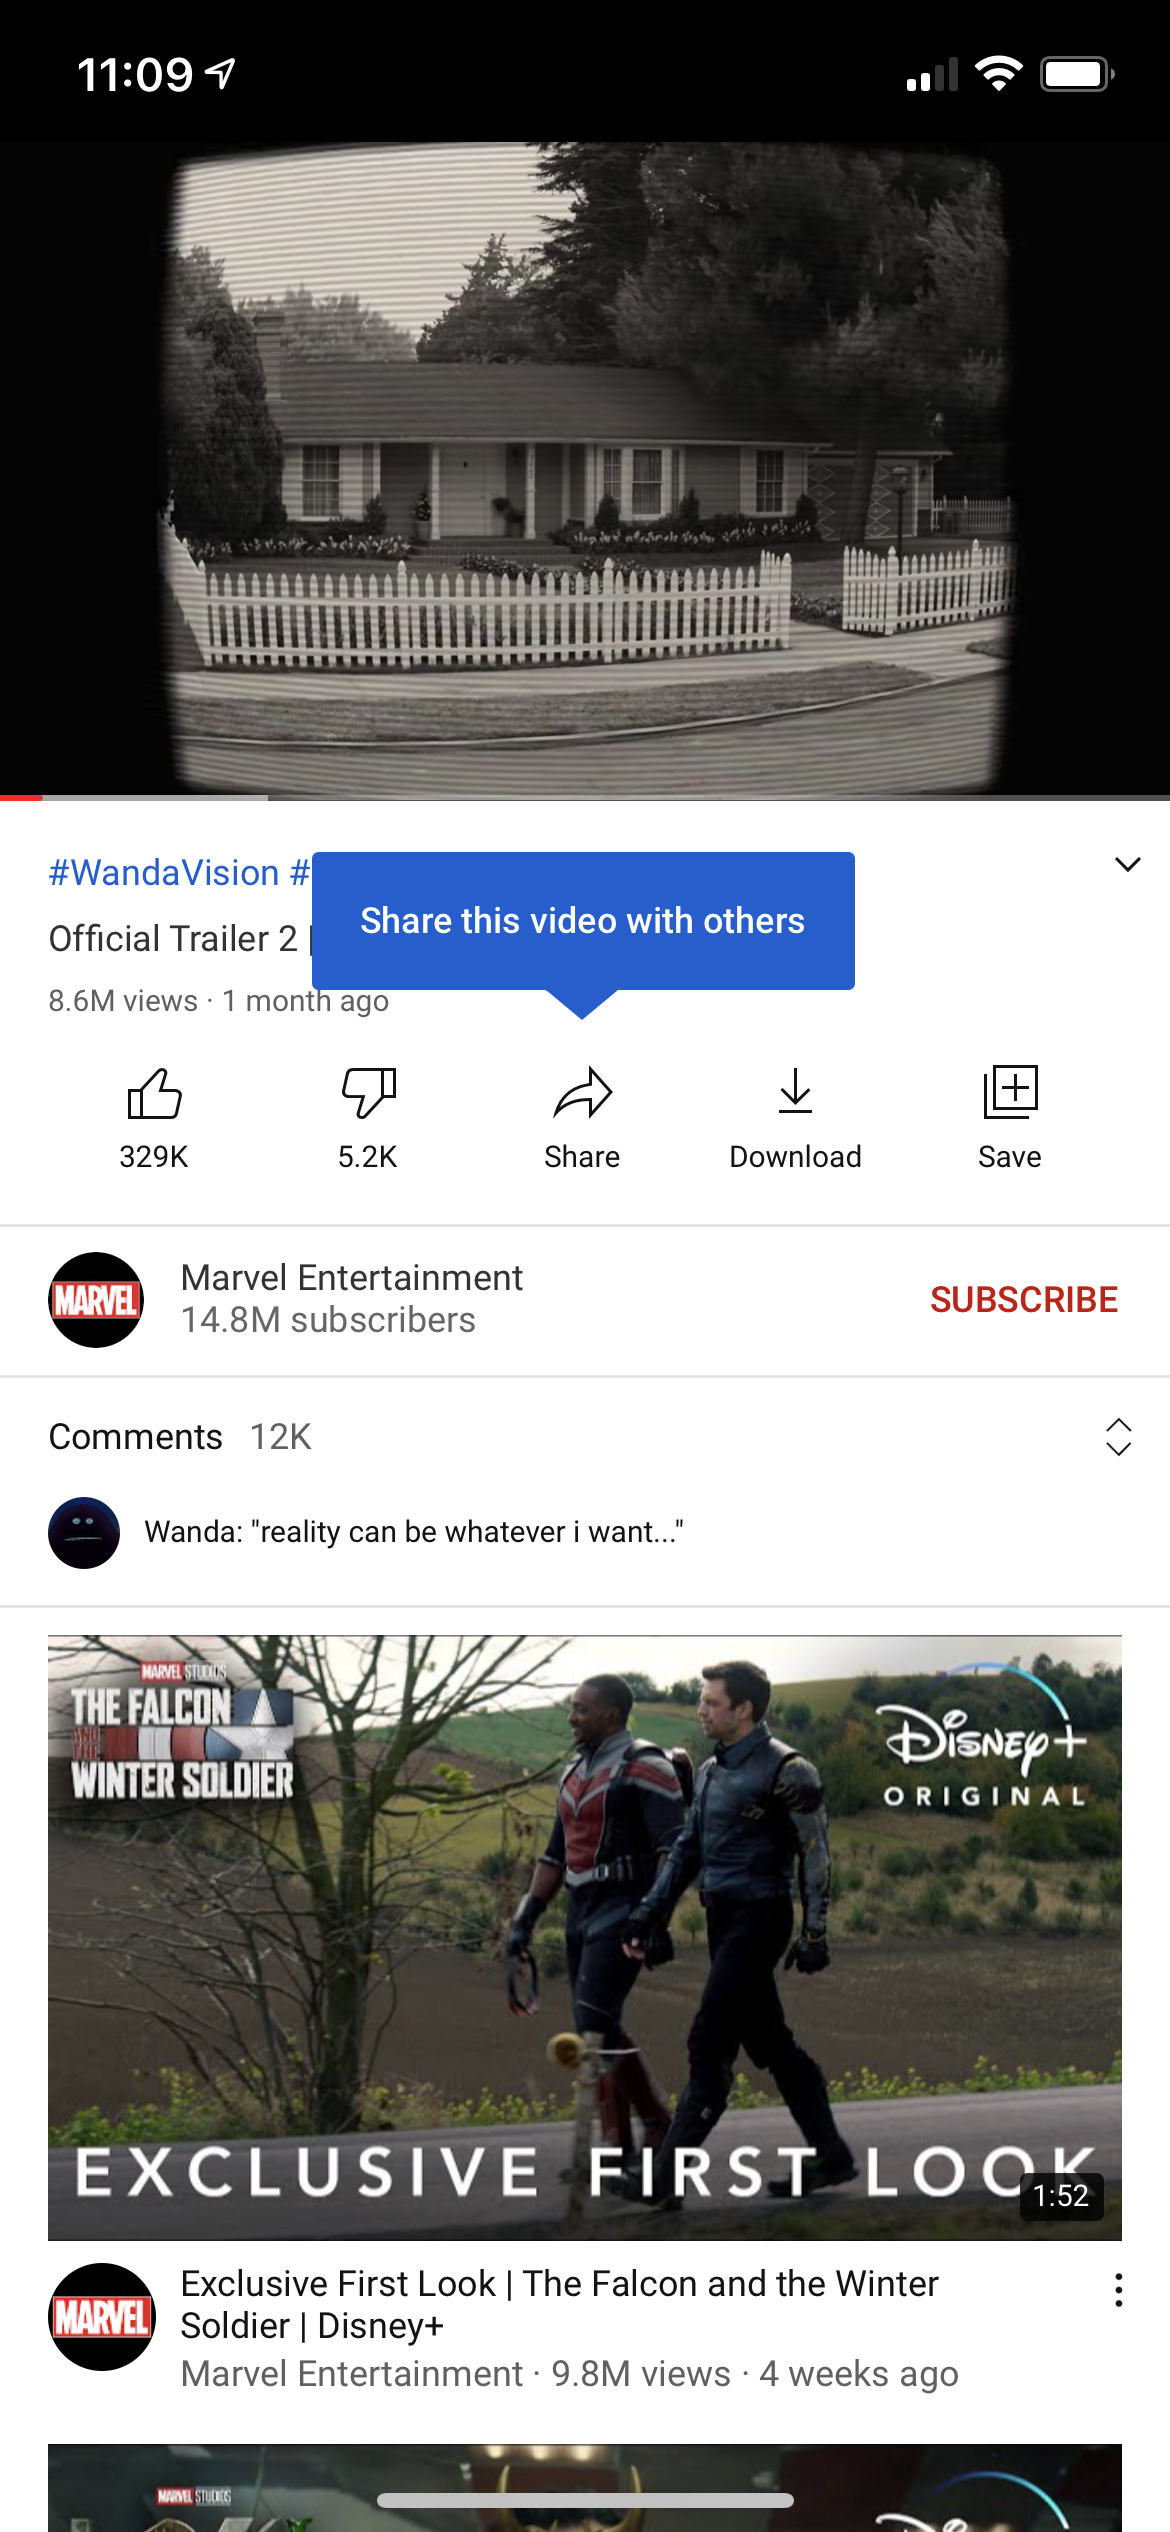 Share this video with others screenshot